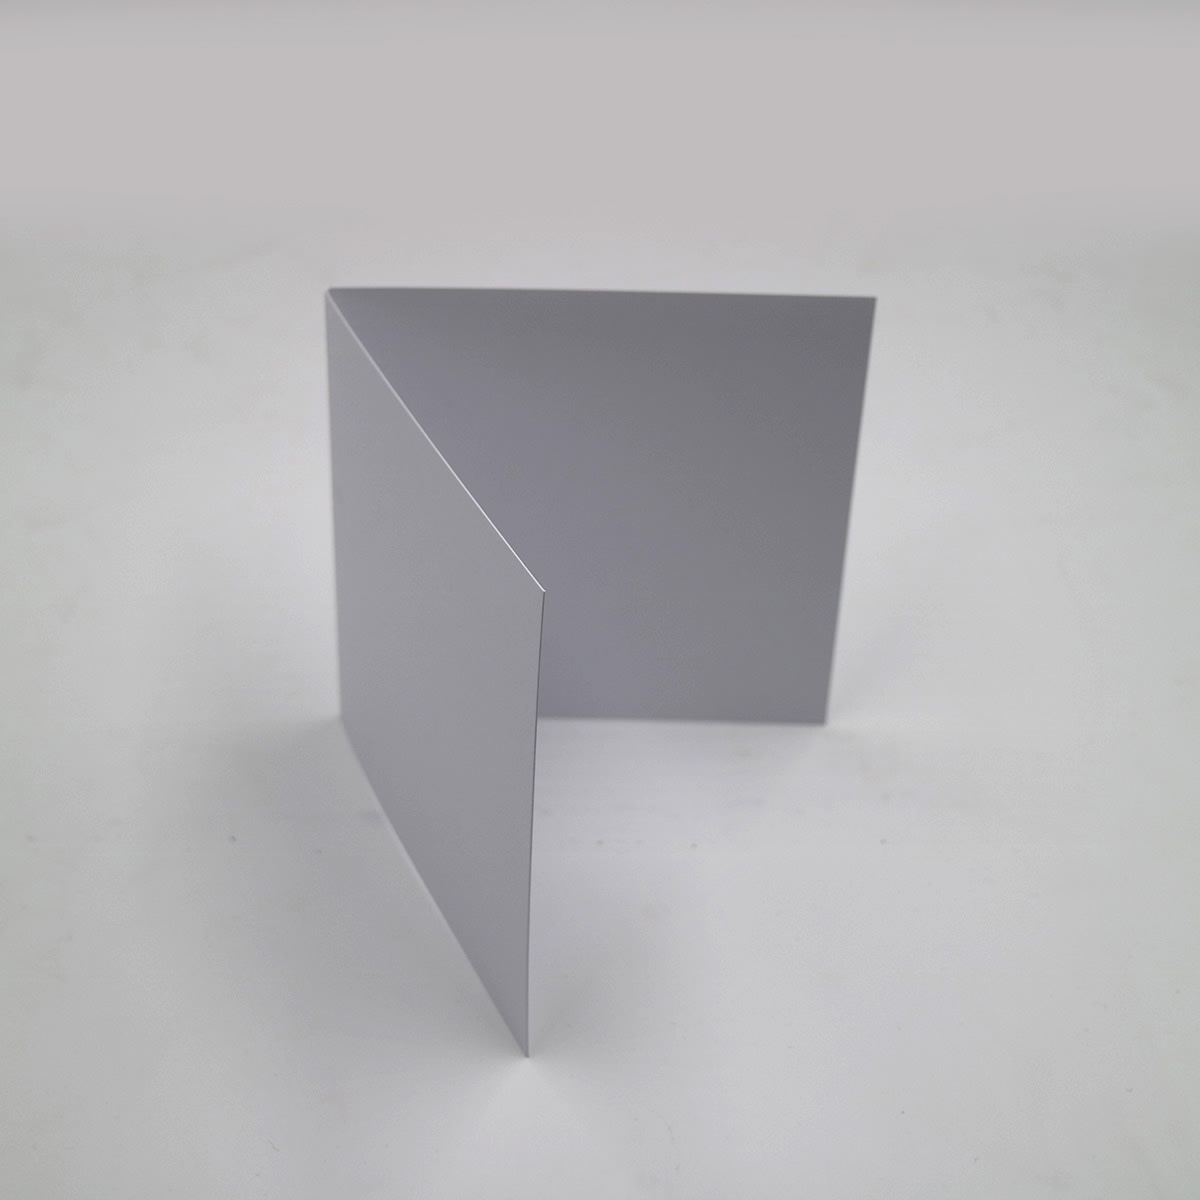 100mm SQUARE SMOOTH WHITE SINGLE FOLD CARD BLANKS 300GSM